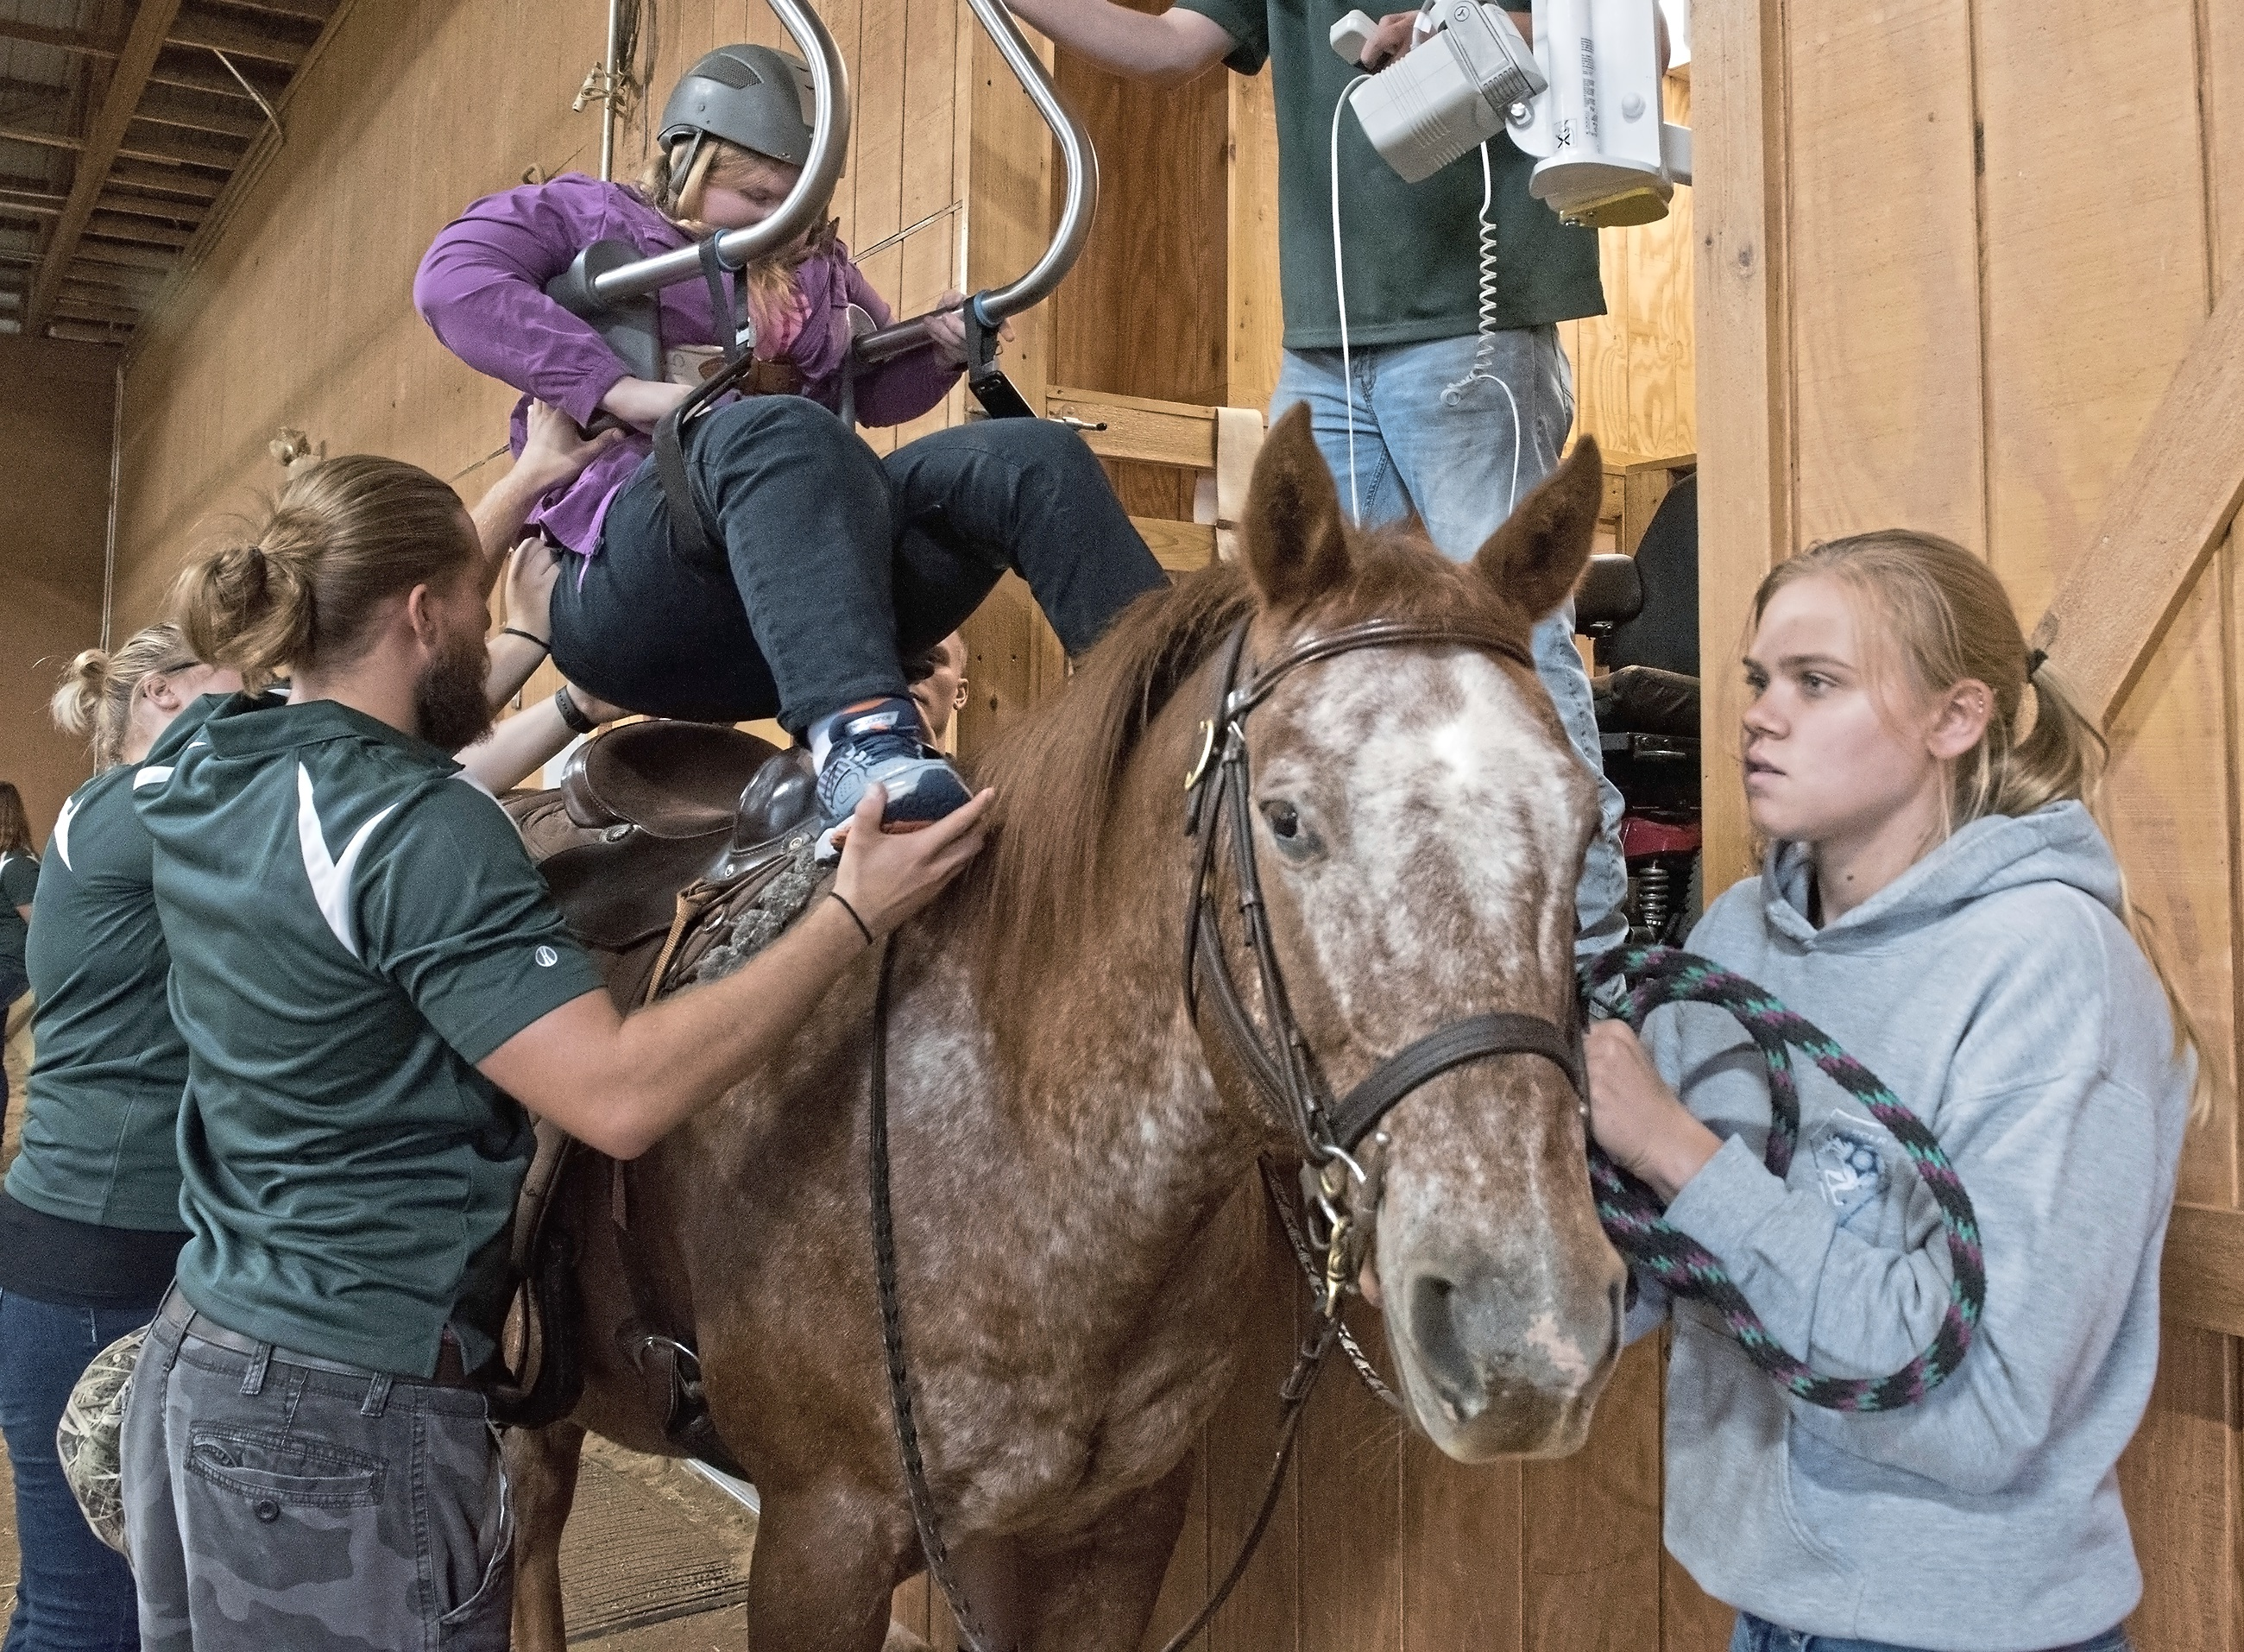 20171006hnRiding-3-4 Kimberly Weibman of Avalon is lowered onto Harley, a 21-year-old Appaloosa, at Storm Harbor Equestrian Center in Slippery Rock.